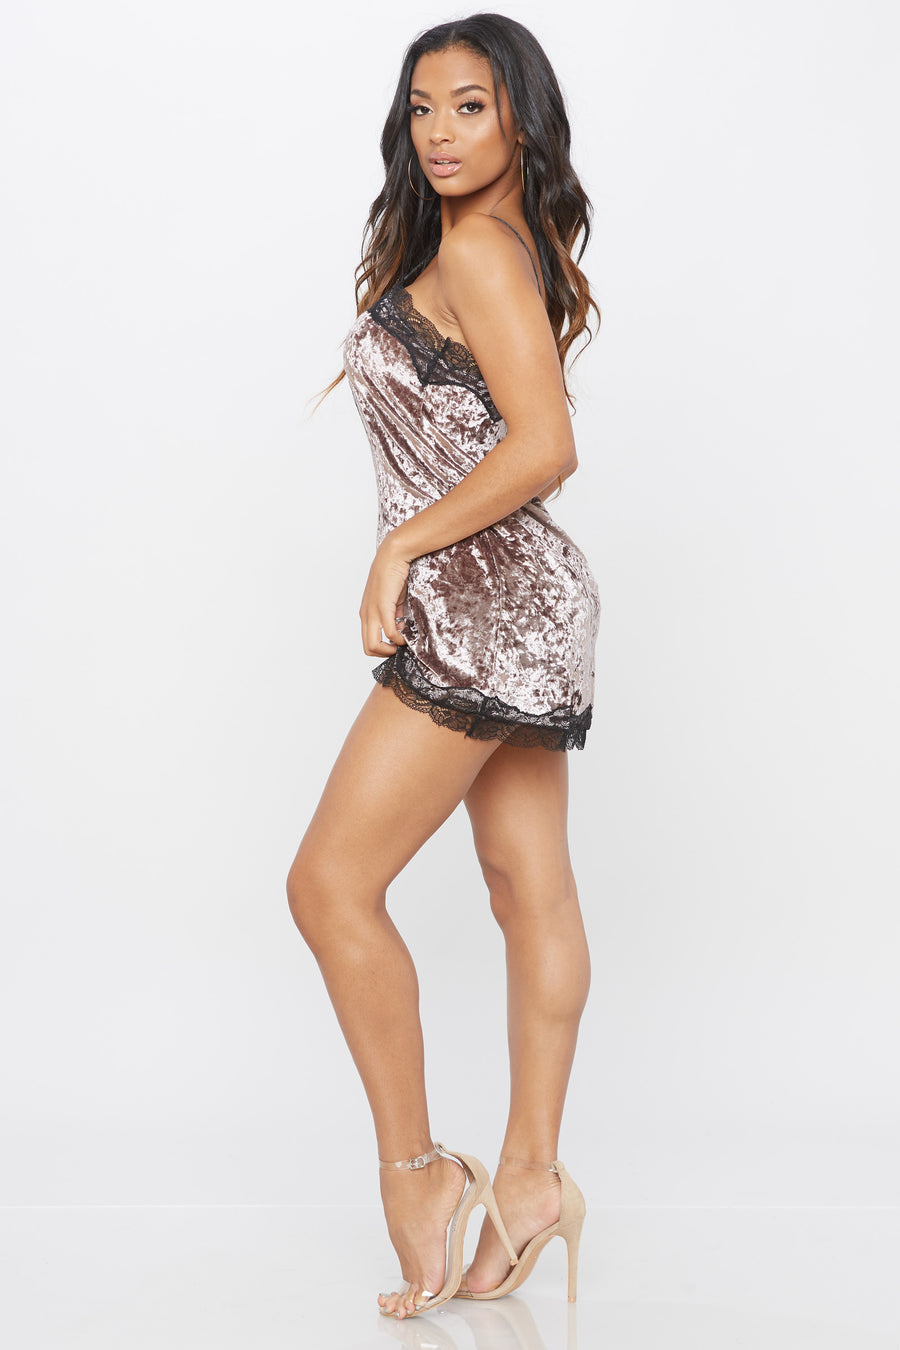 Rumors Dress - HoneyBum